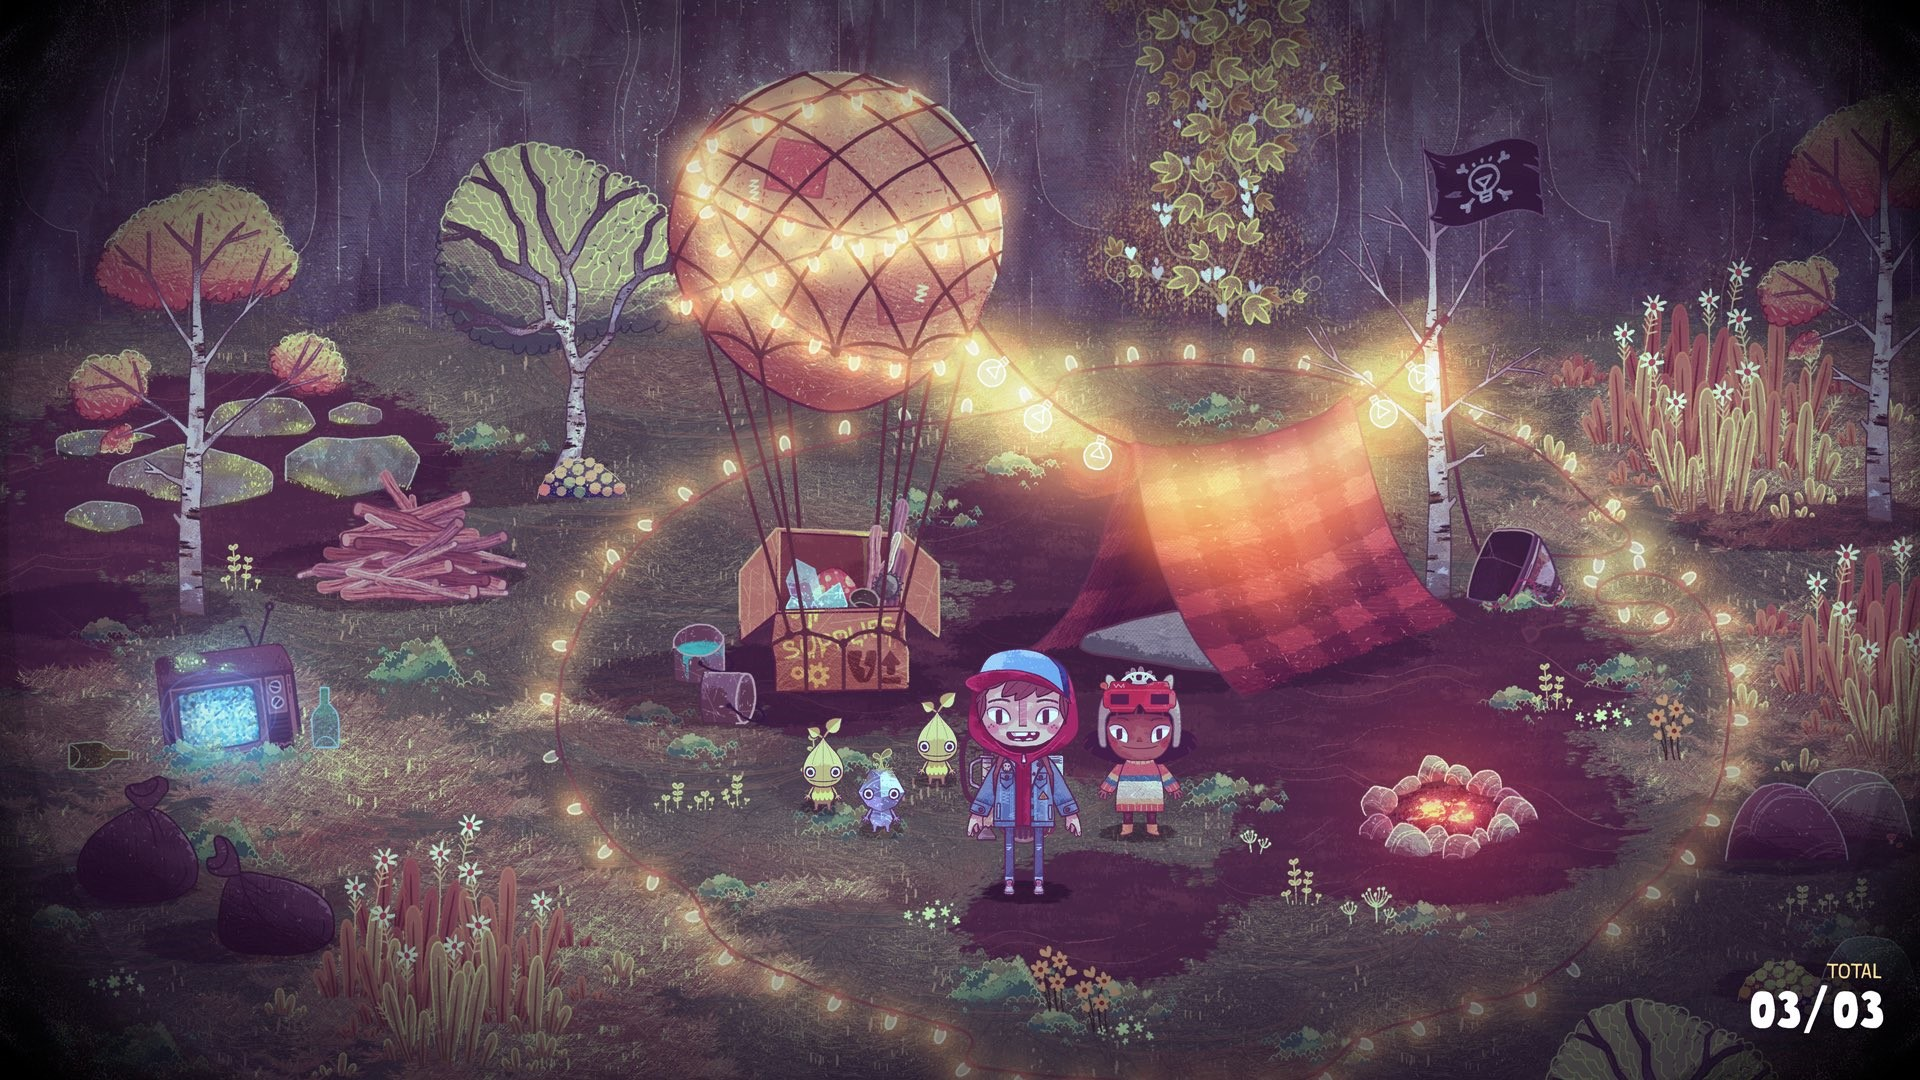 New games: The Wild at Heart reimagines Pikmin in beautiful storybook art | PCGamesN